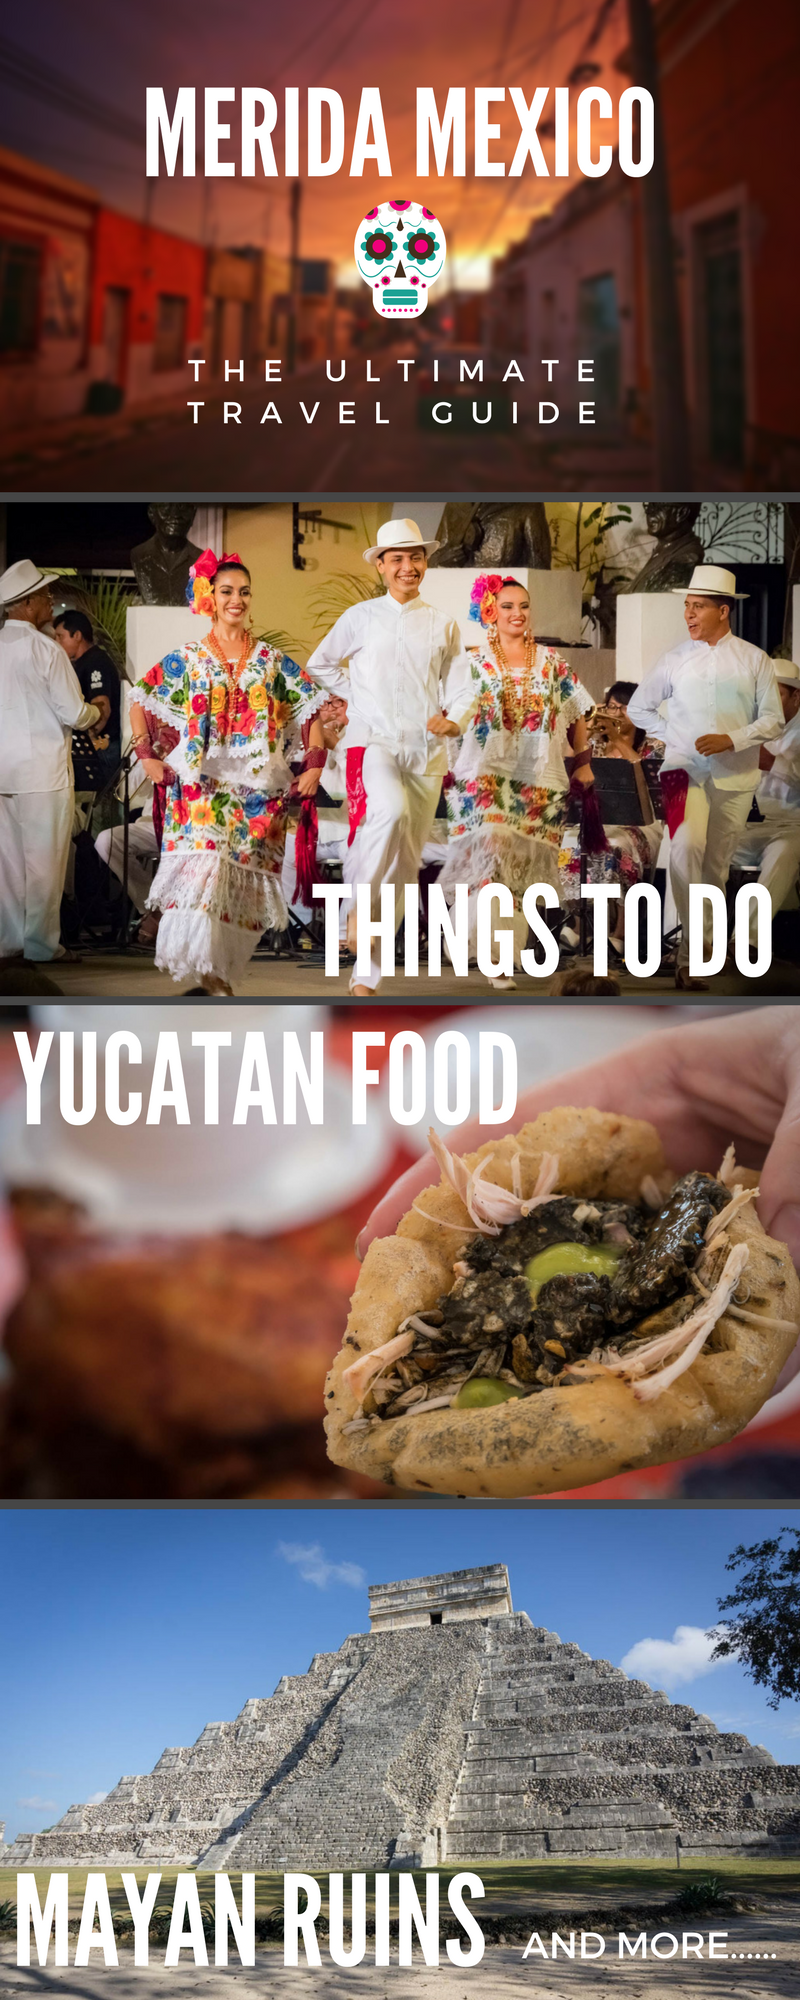 Merida Mexico: Things to do, Restaurants, Yucatan Food, Day trip Itineraries, Nightlife, Best Mayan Ruins, Merida Beaches, Markets, Best Hotels in Merida...